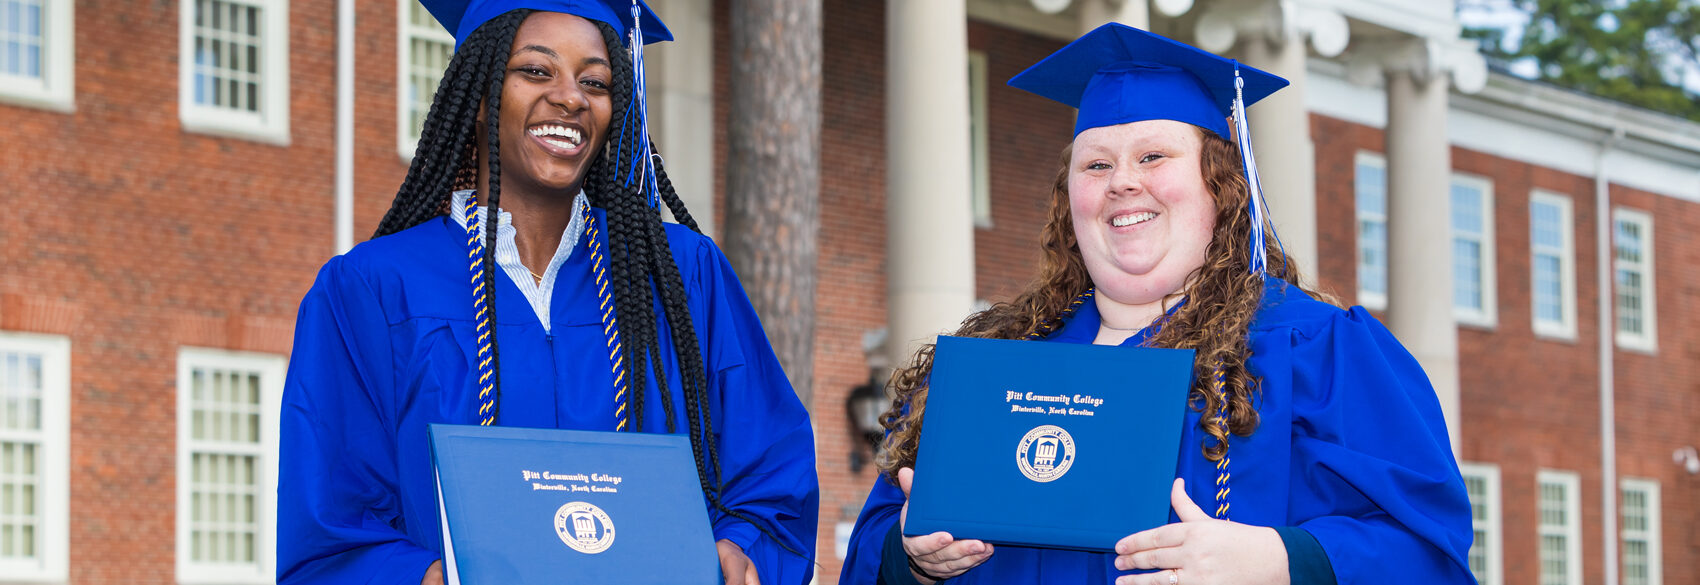 A pair of PCC graduates wearing their caps and gowns smile outside of the Humber Building